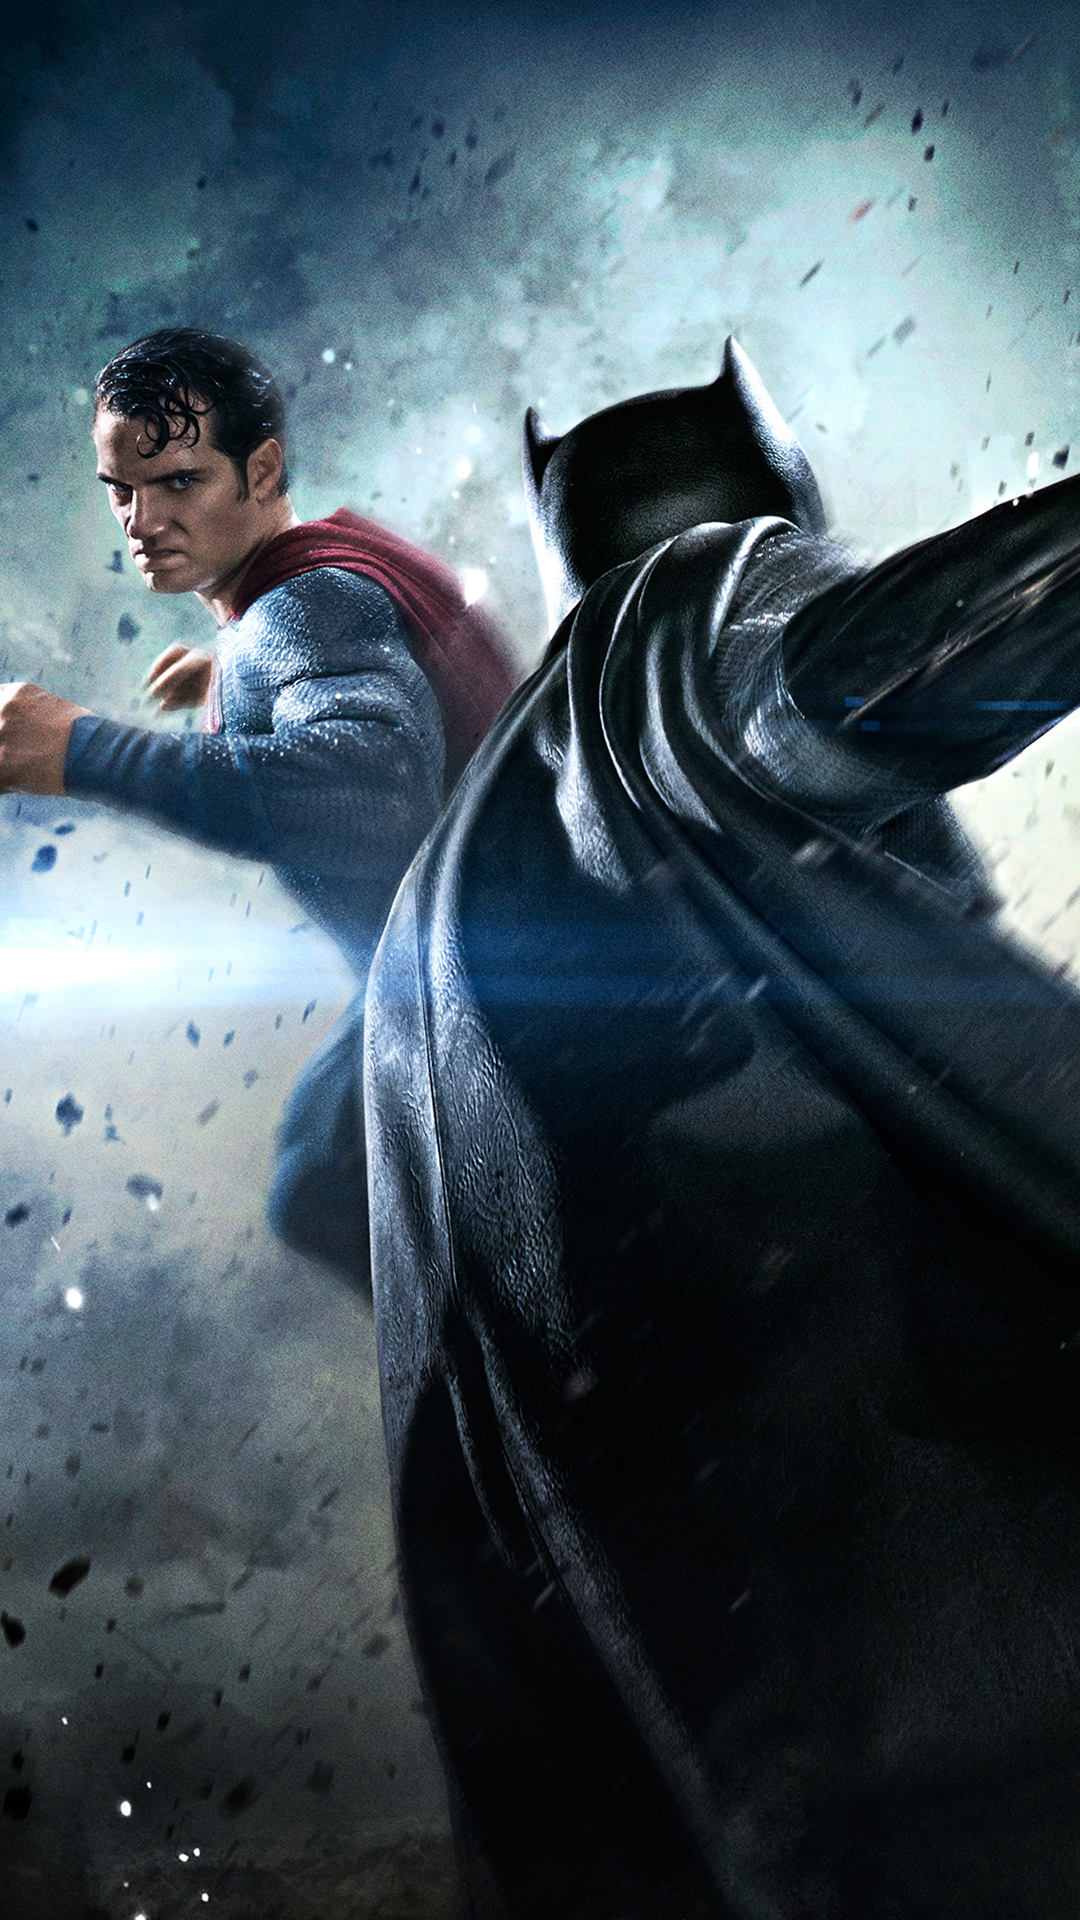 batman vs superman movie fight android wallpaper android hd wallpapers